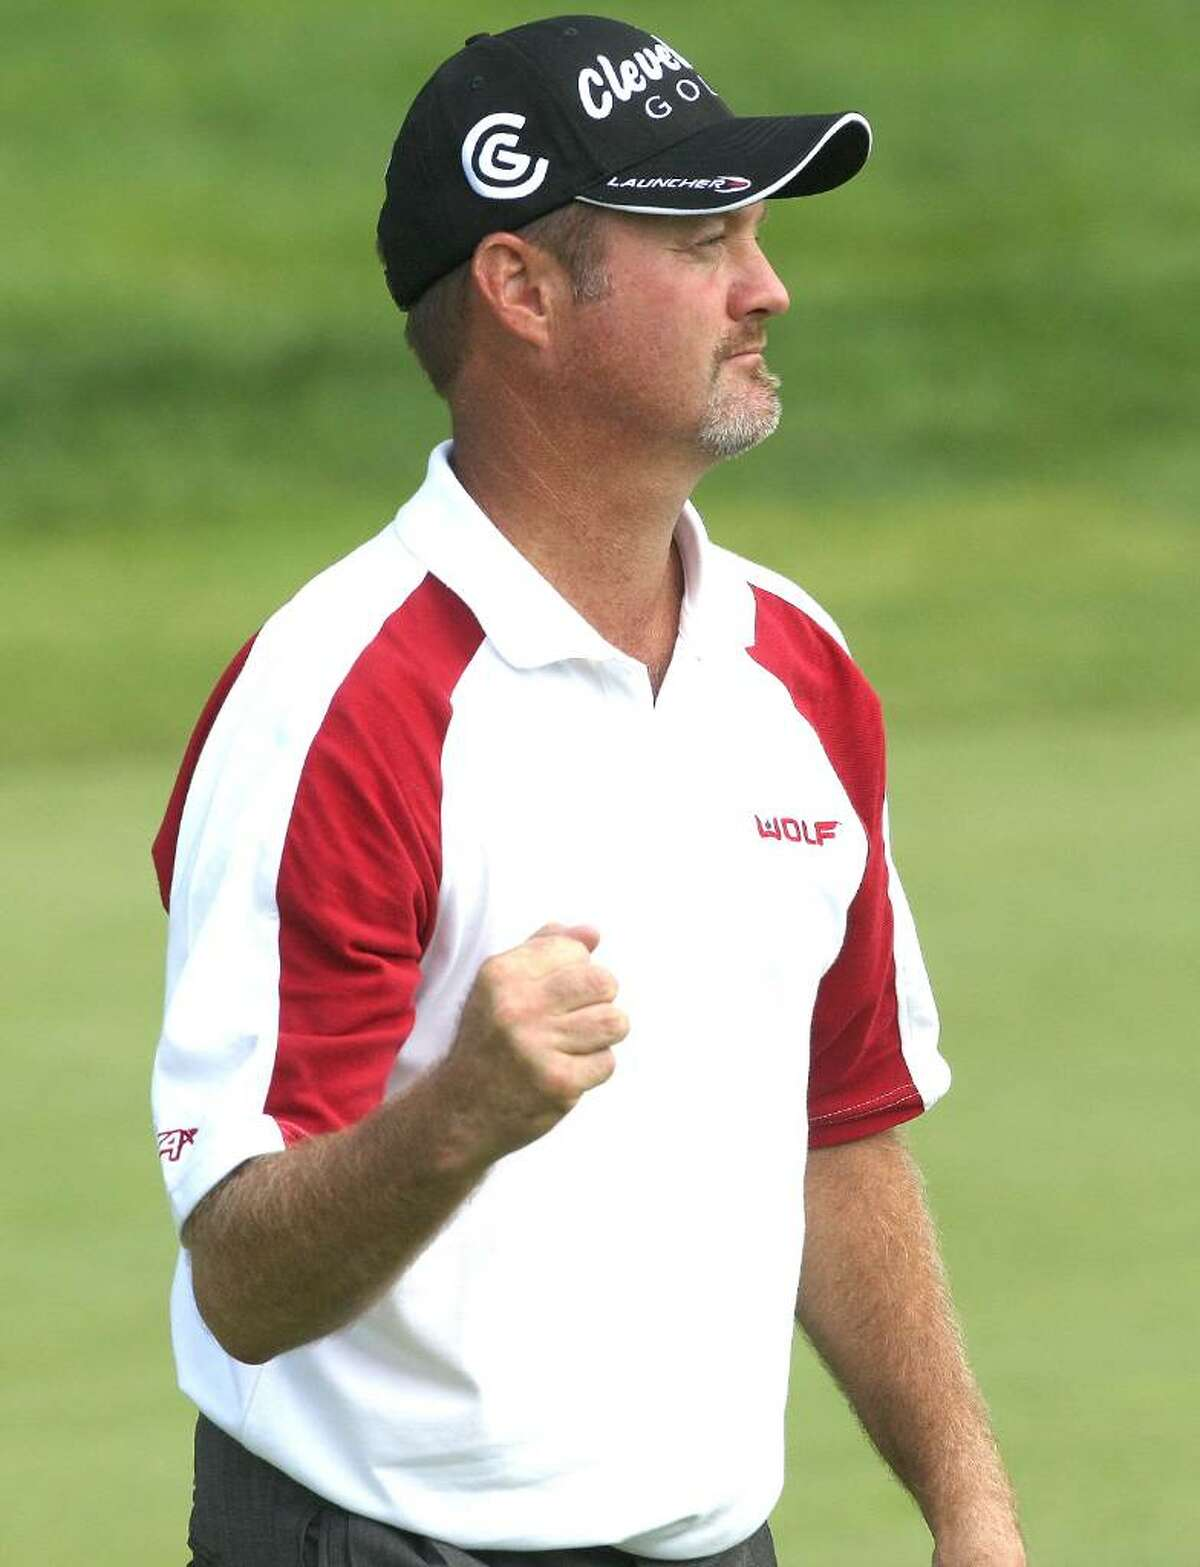 CROMWELL, CONNECTICUT - JUNE 27: Jerry Kelly reacts during round three of the 2009 Travelers Championship at TPC River Highlands on June 27, 2009 in Cromwell, Connecticut. (Photo by Jim Rogash/Getty Images) *** Local Caption *** Jerry Kelly